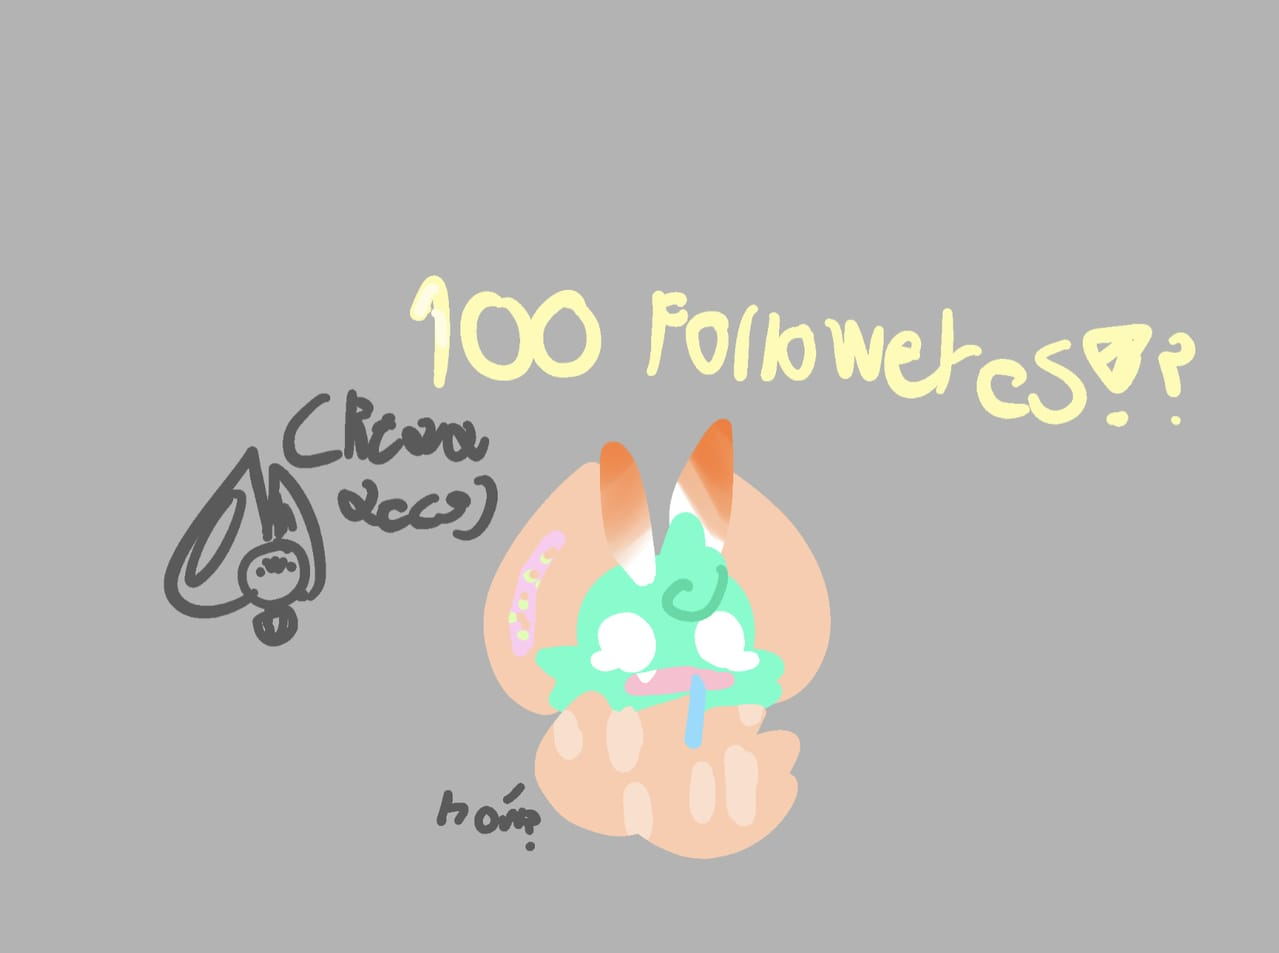 lol thx for 100 followeres. Illust of cat on ø